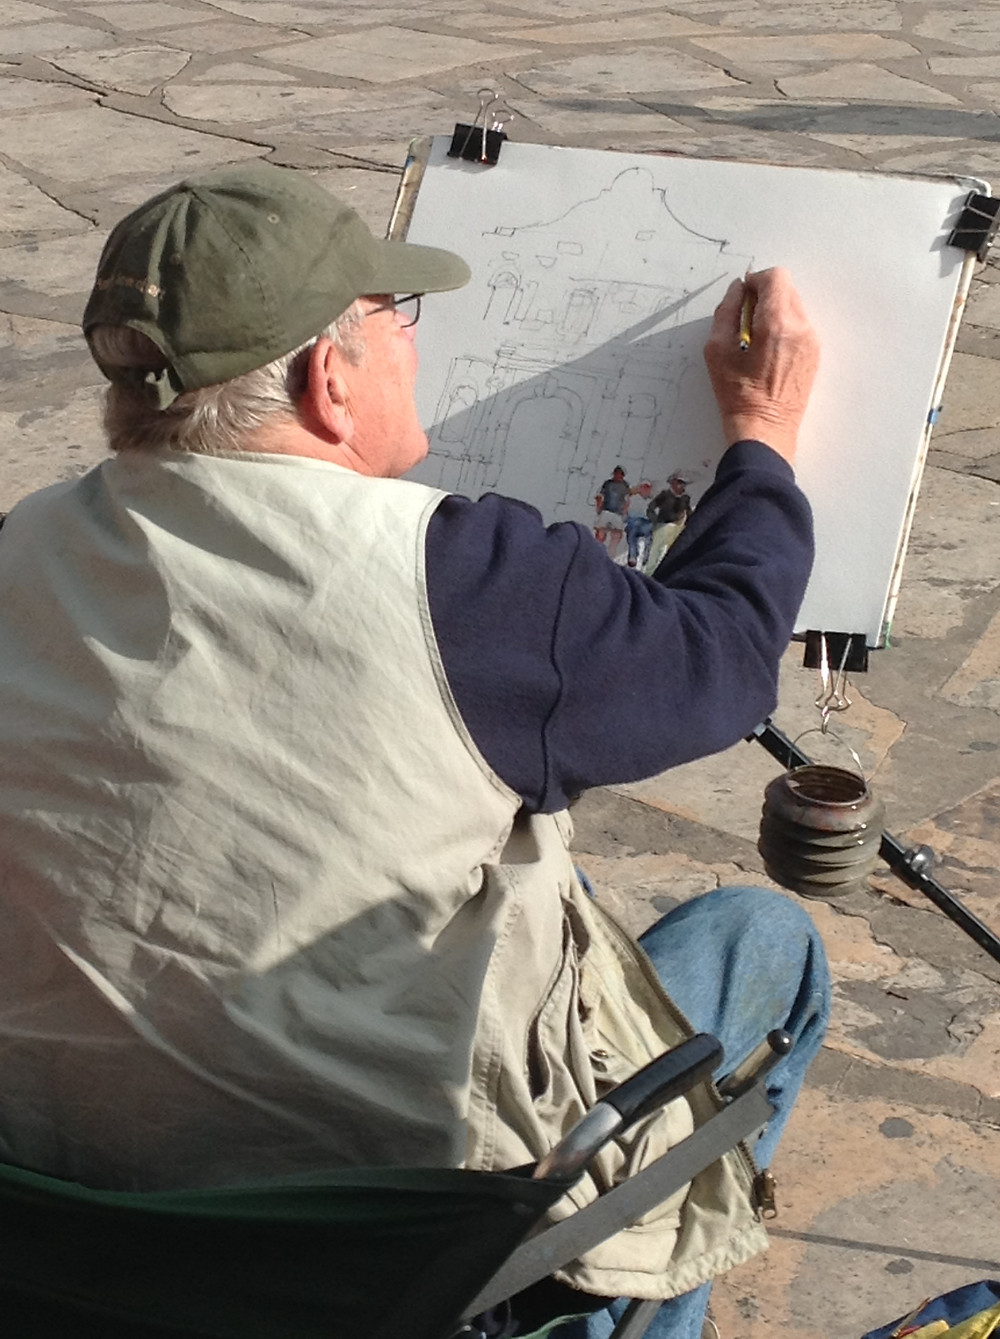 Charles starting the sketch of the Alamo